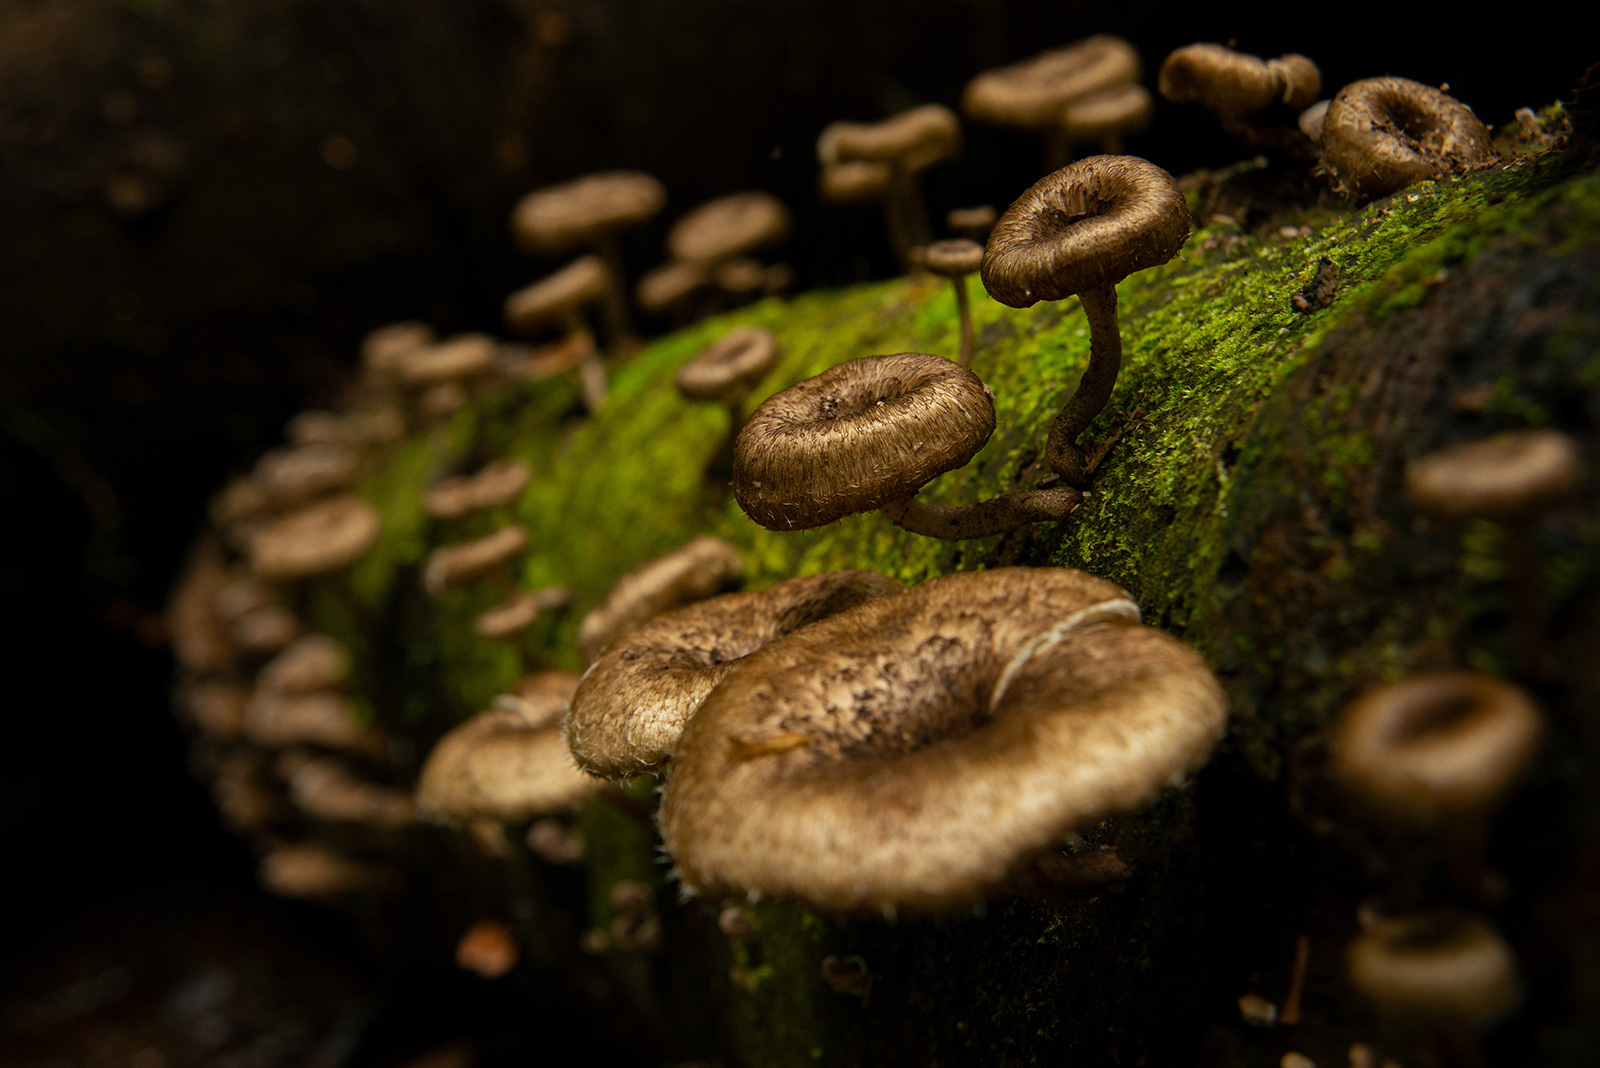 A colony of small mushrooms grows on a mossy log